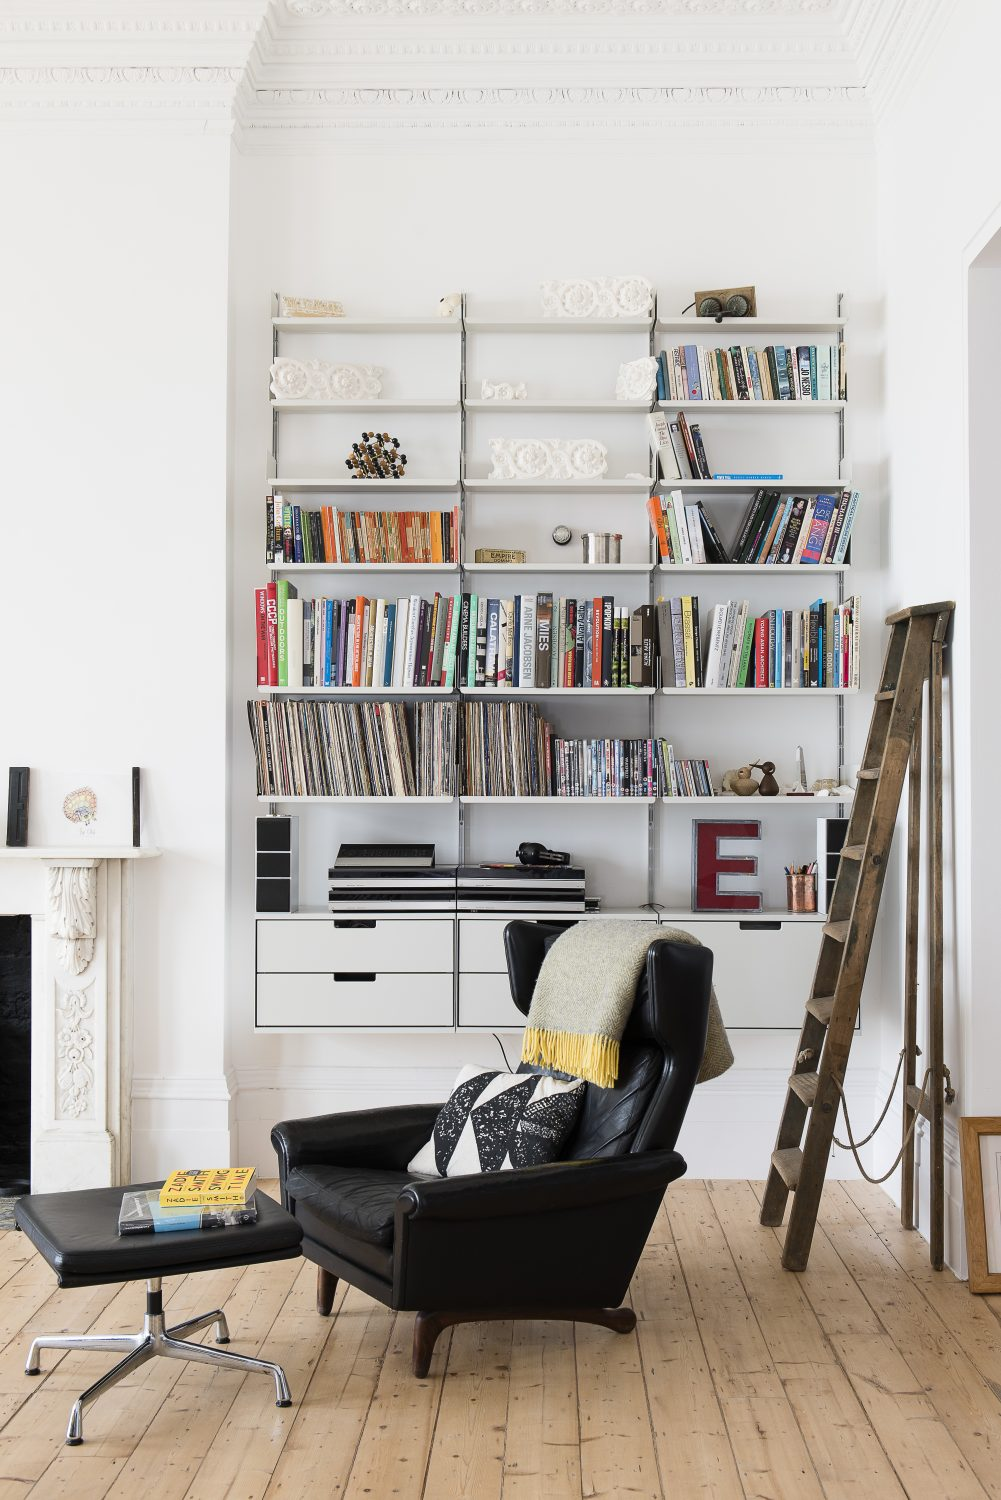 Dieter Rams' shelving by Vitsoe Above left: The garden seen through the kitchen window at the back of the house. The vintage haberdasher's cabinet is from ebay